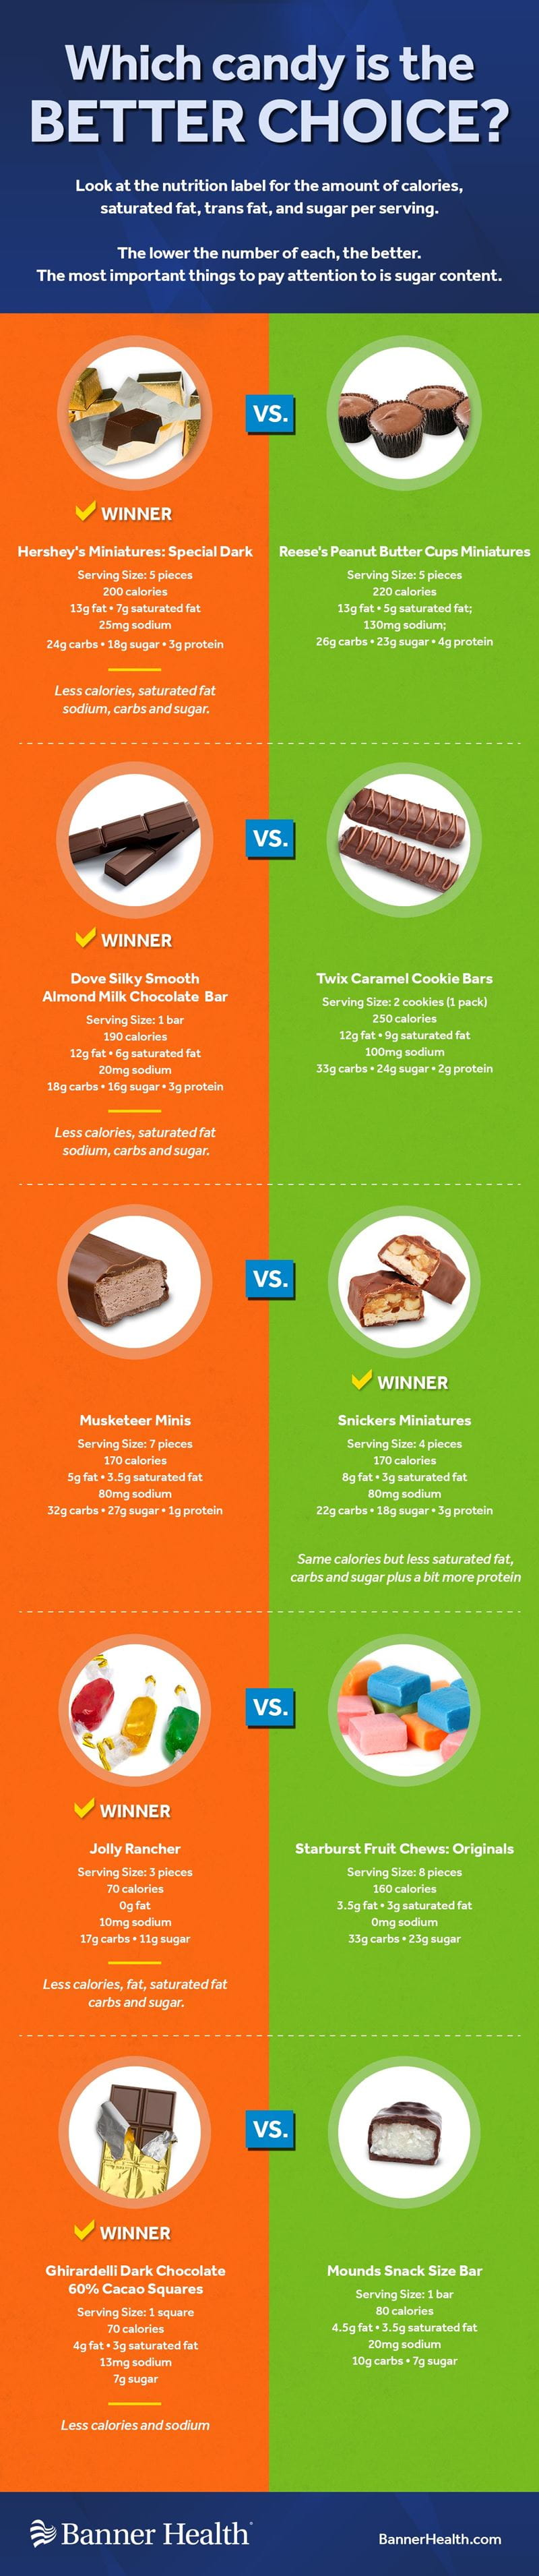 candy-comparison-infographic